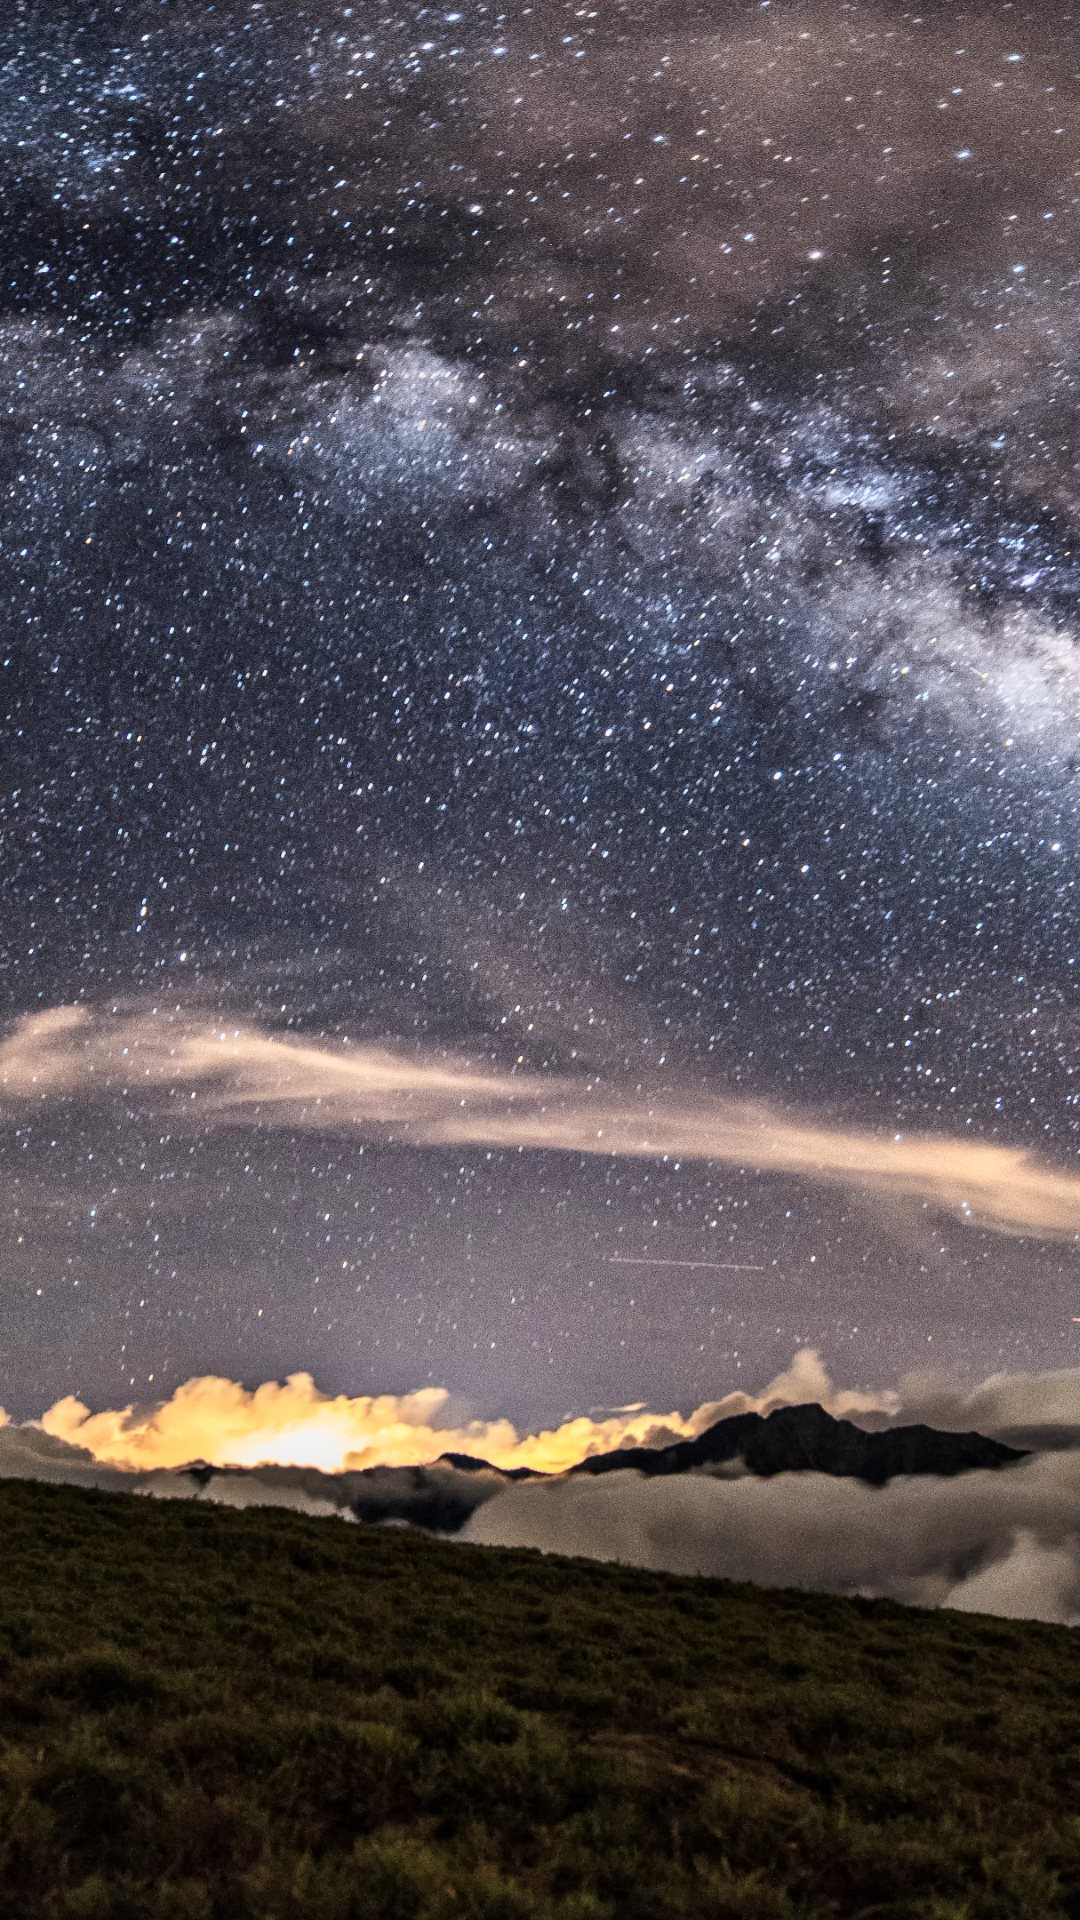 Milky Way on the Night Sky HD Wallpapers 4K Wallpapers 1080x1920